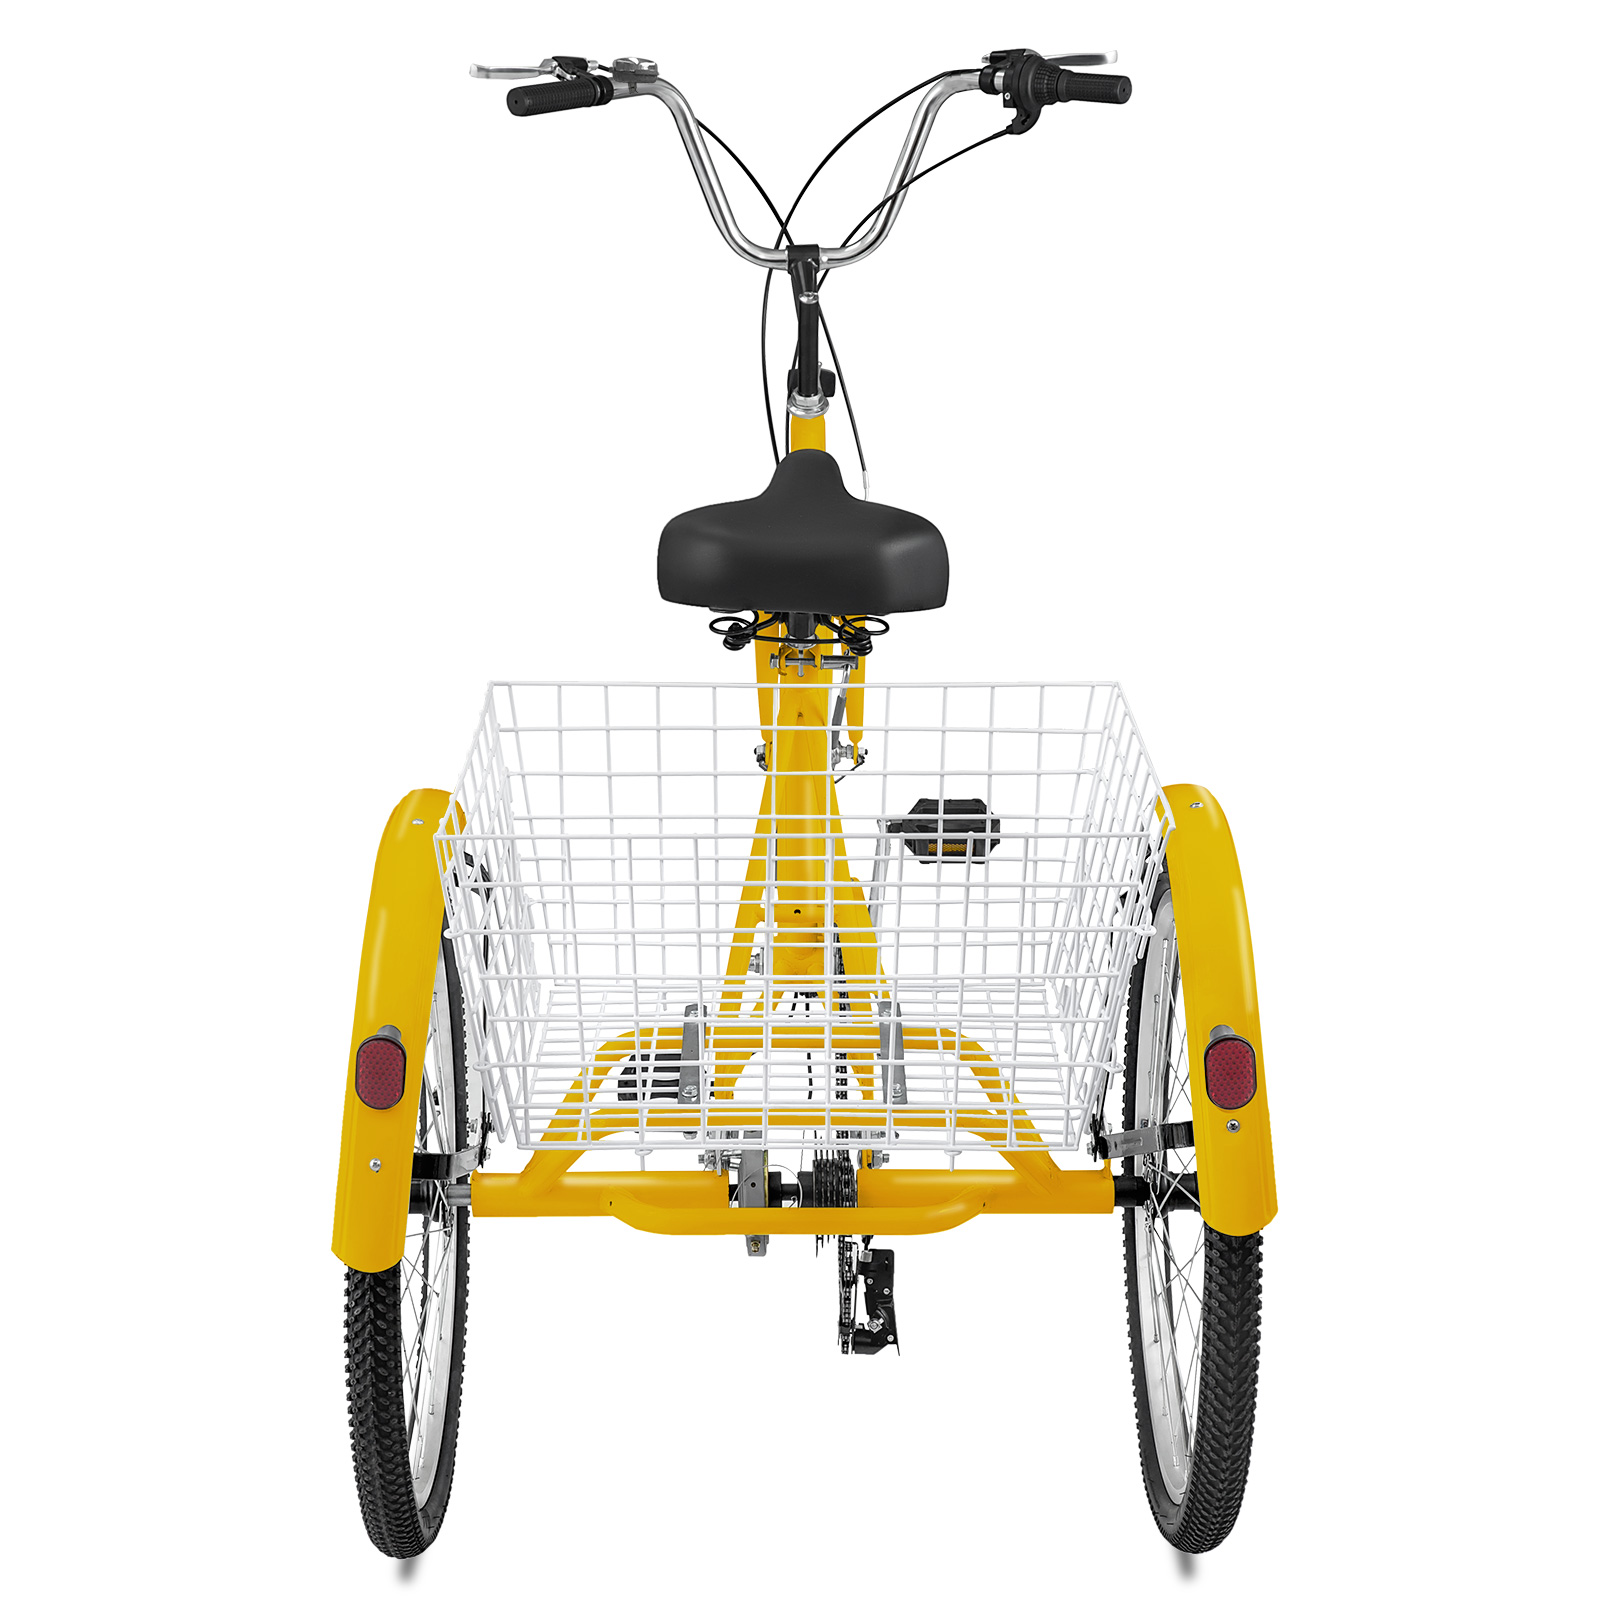 20-24-26-034-Adult-Tricycle-1-7-Speed-3-Wheel-Large-Basket-For-Shopping-Optional thumbnail 24